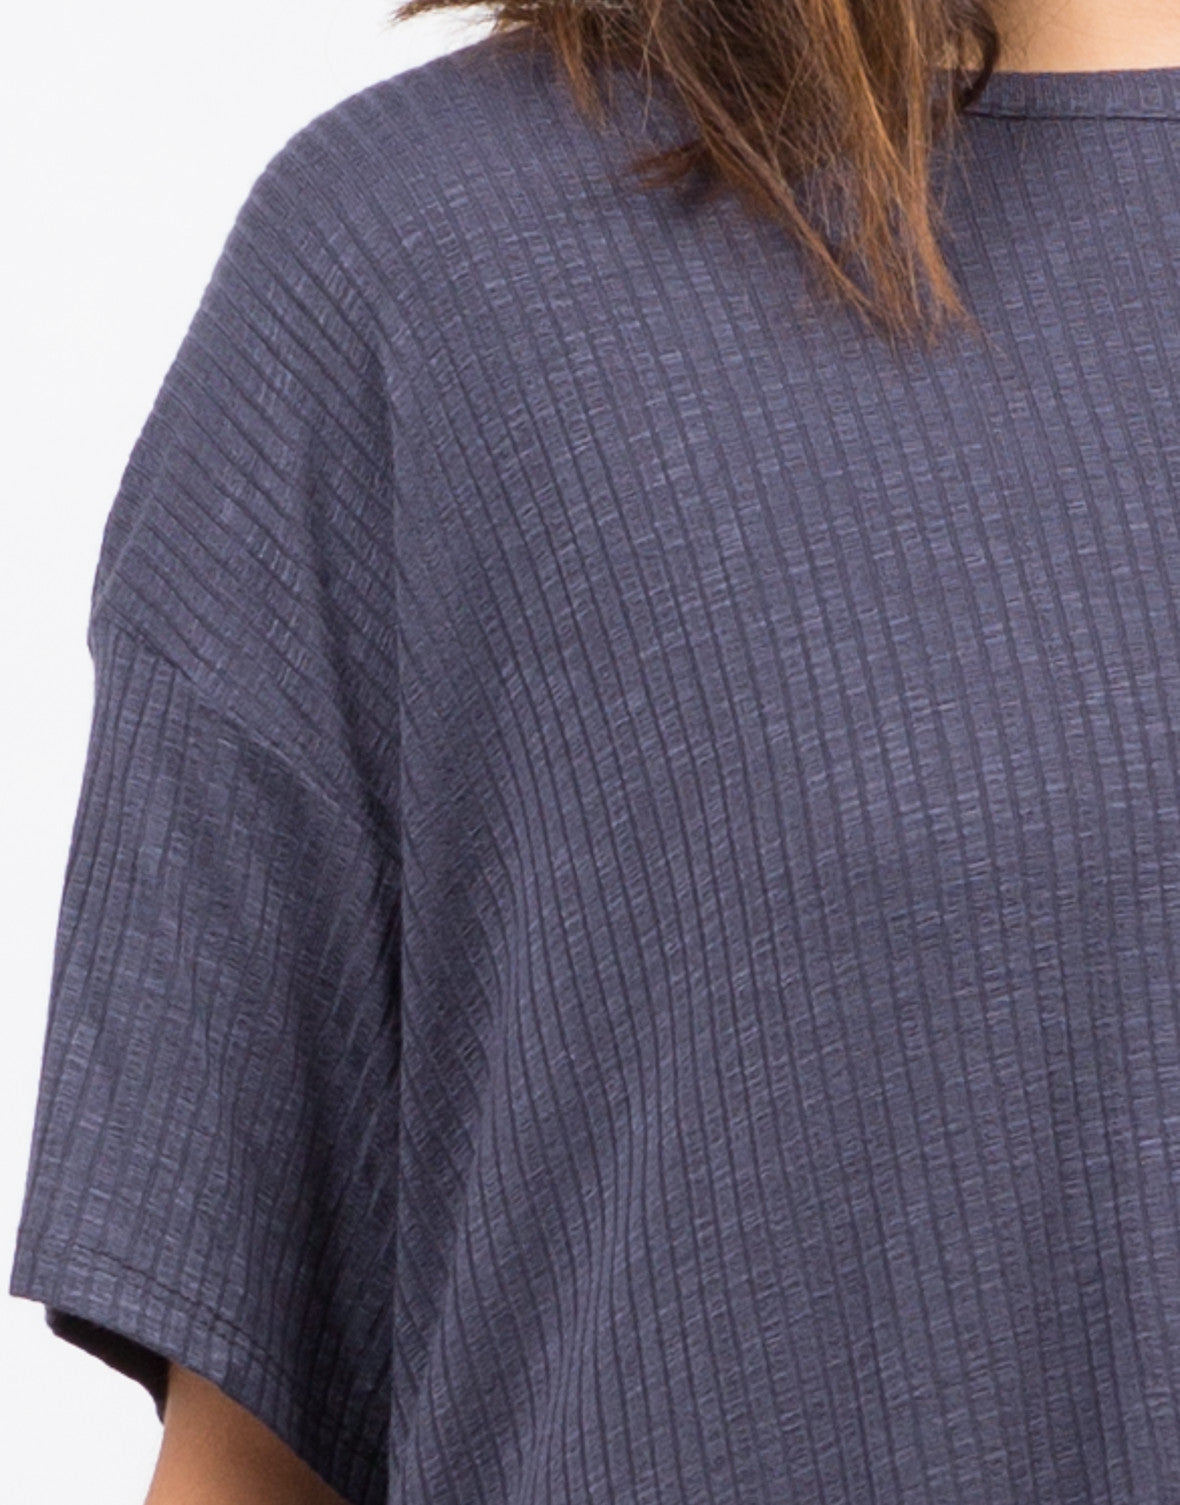 Detail of Lazy Sunday Ribbed Tee